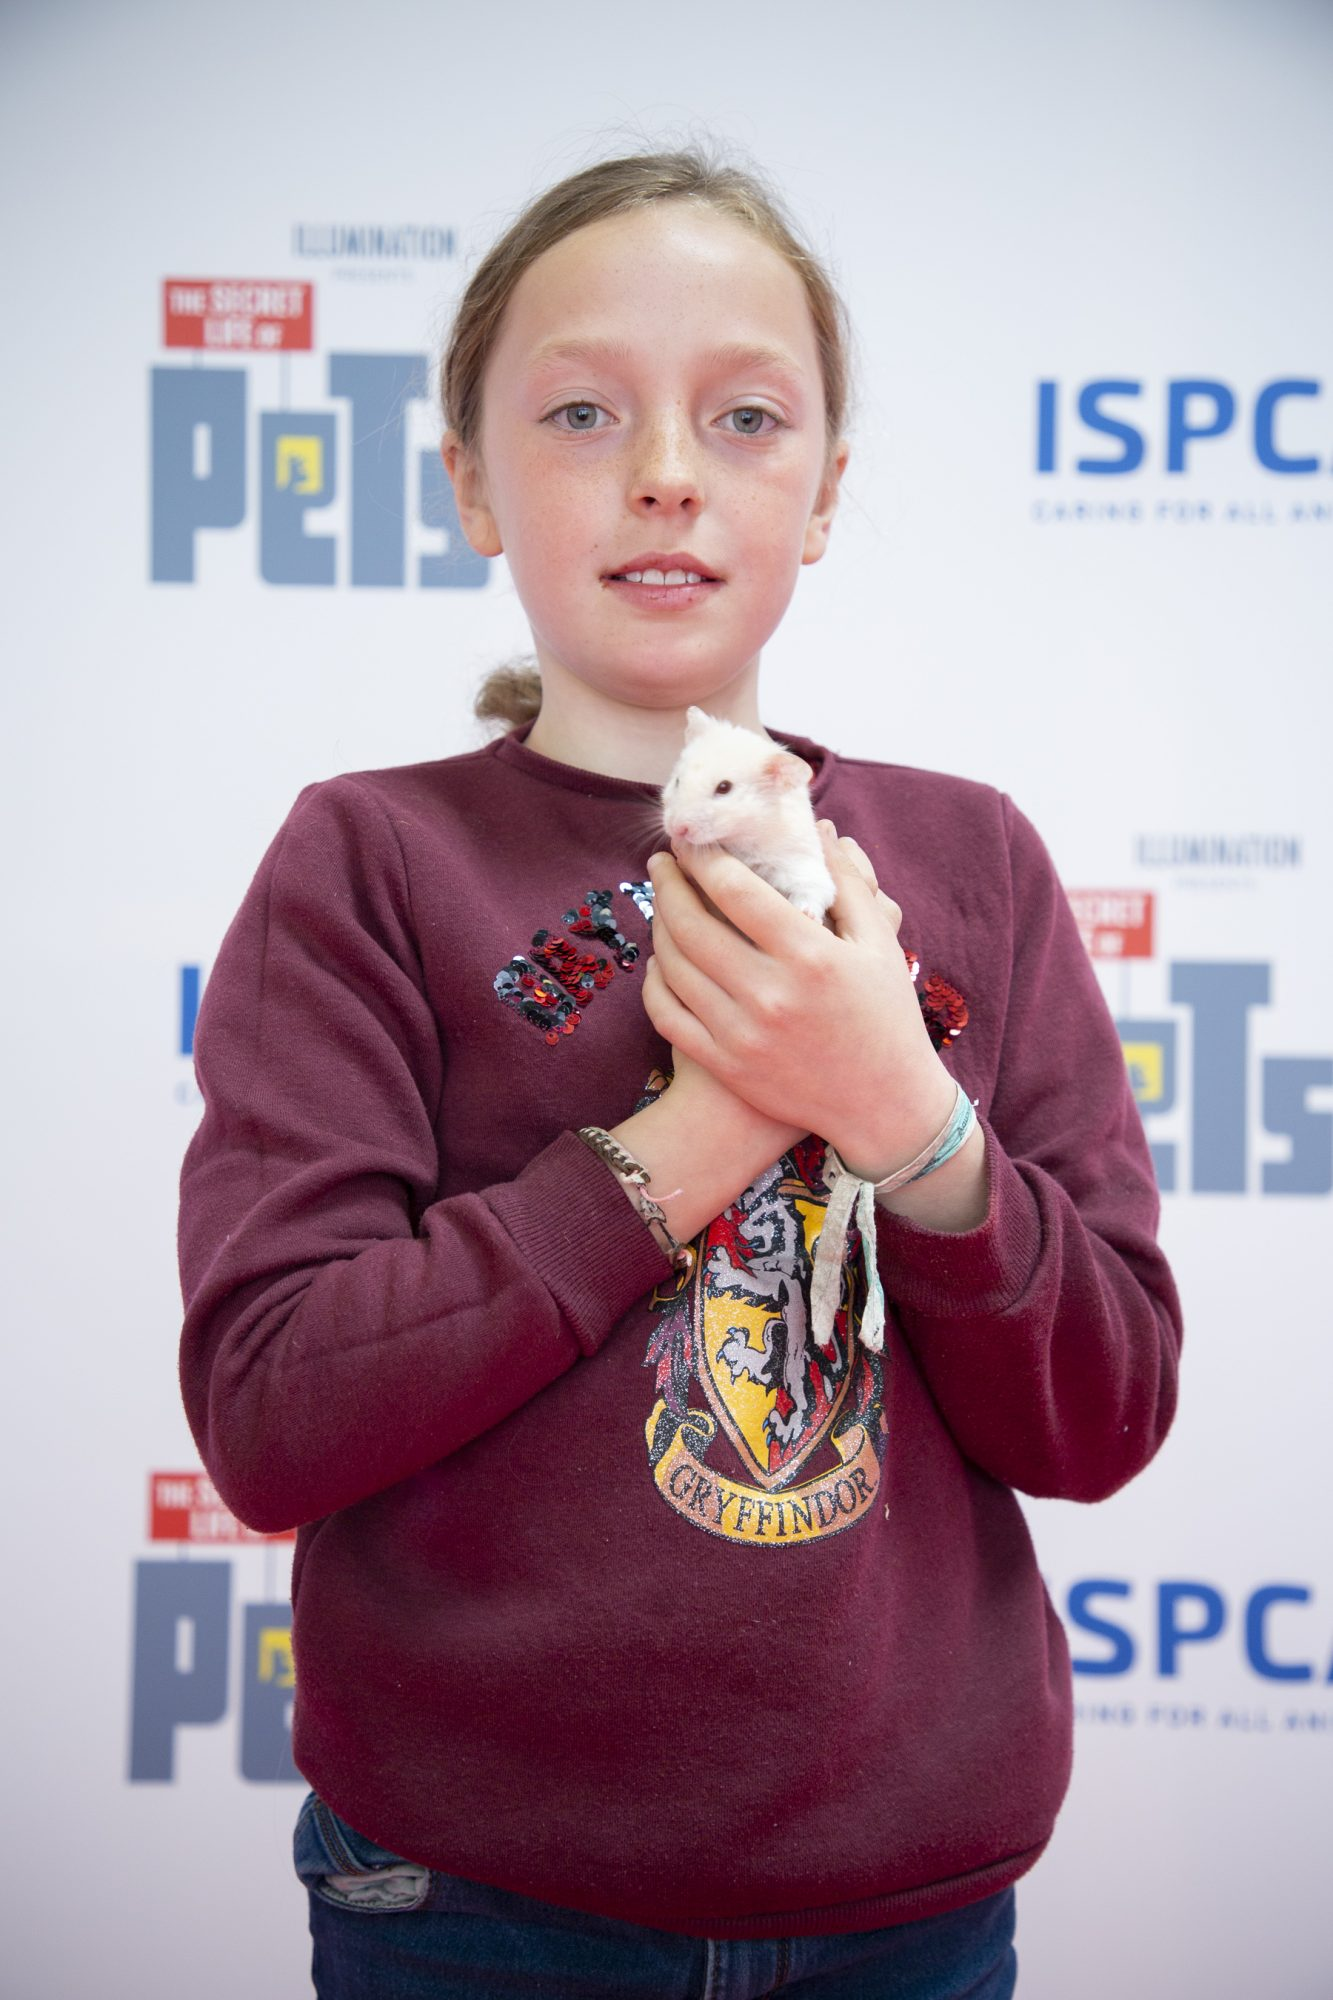 Molly Coyle & Ed pictured at the Irish premiere screening of The Secret Life of Pets 2 at Odeon Point Square, Dublin hosted by Universal Pictures in association with the ISPCA. The Secret Life of Pets 2 is in cinemas from Friday May 24th. Photo: Anthony Woods